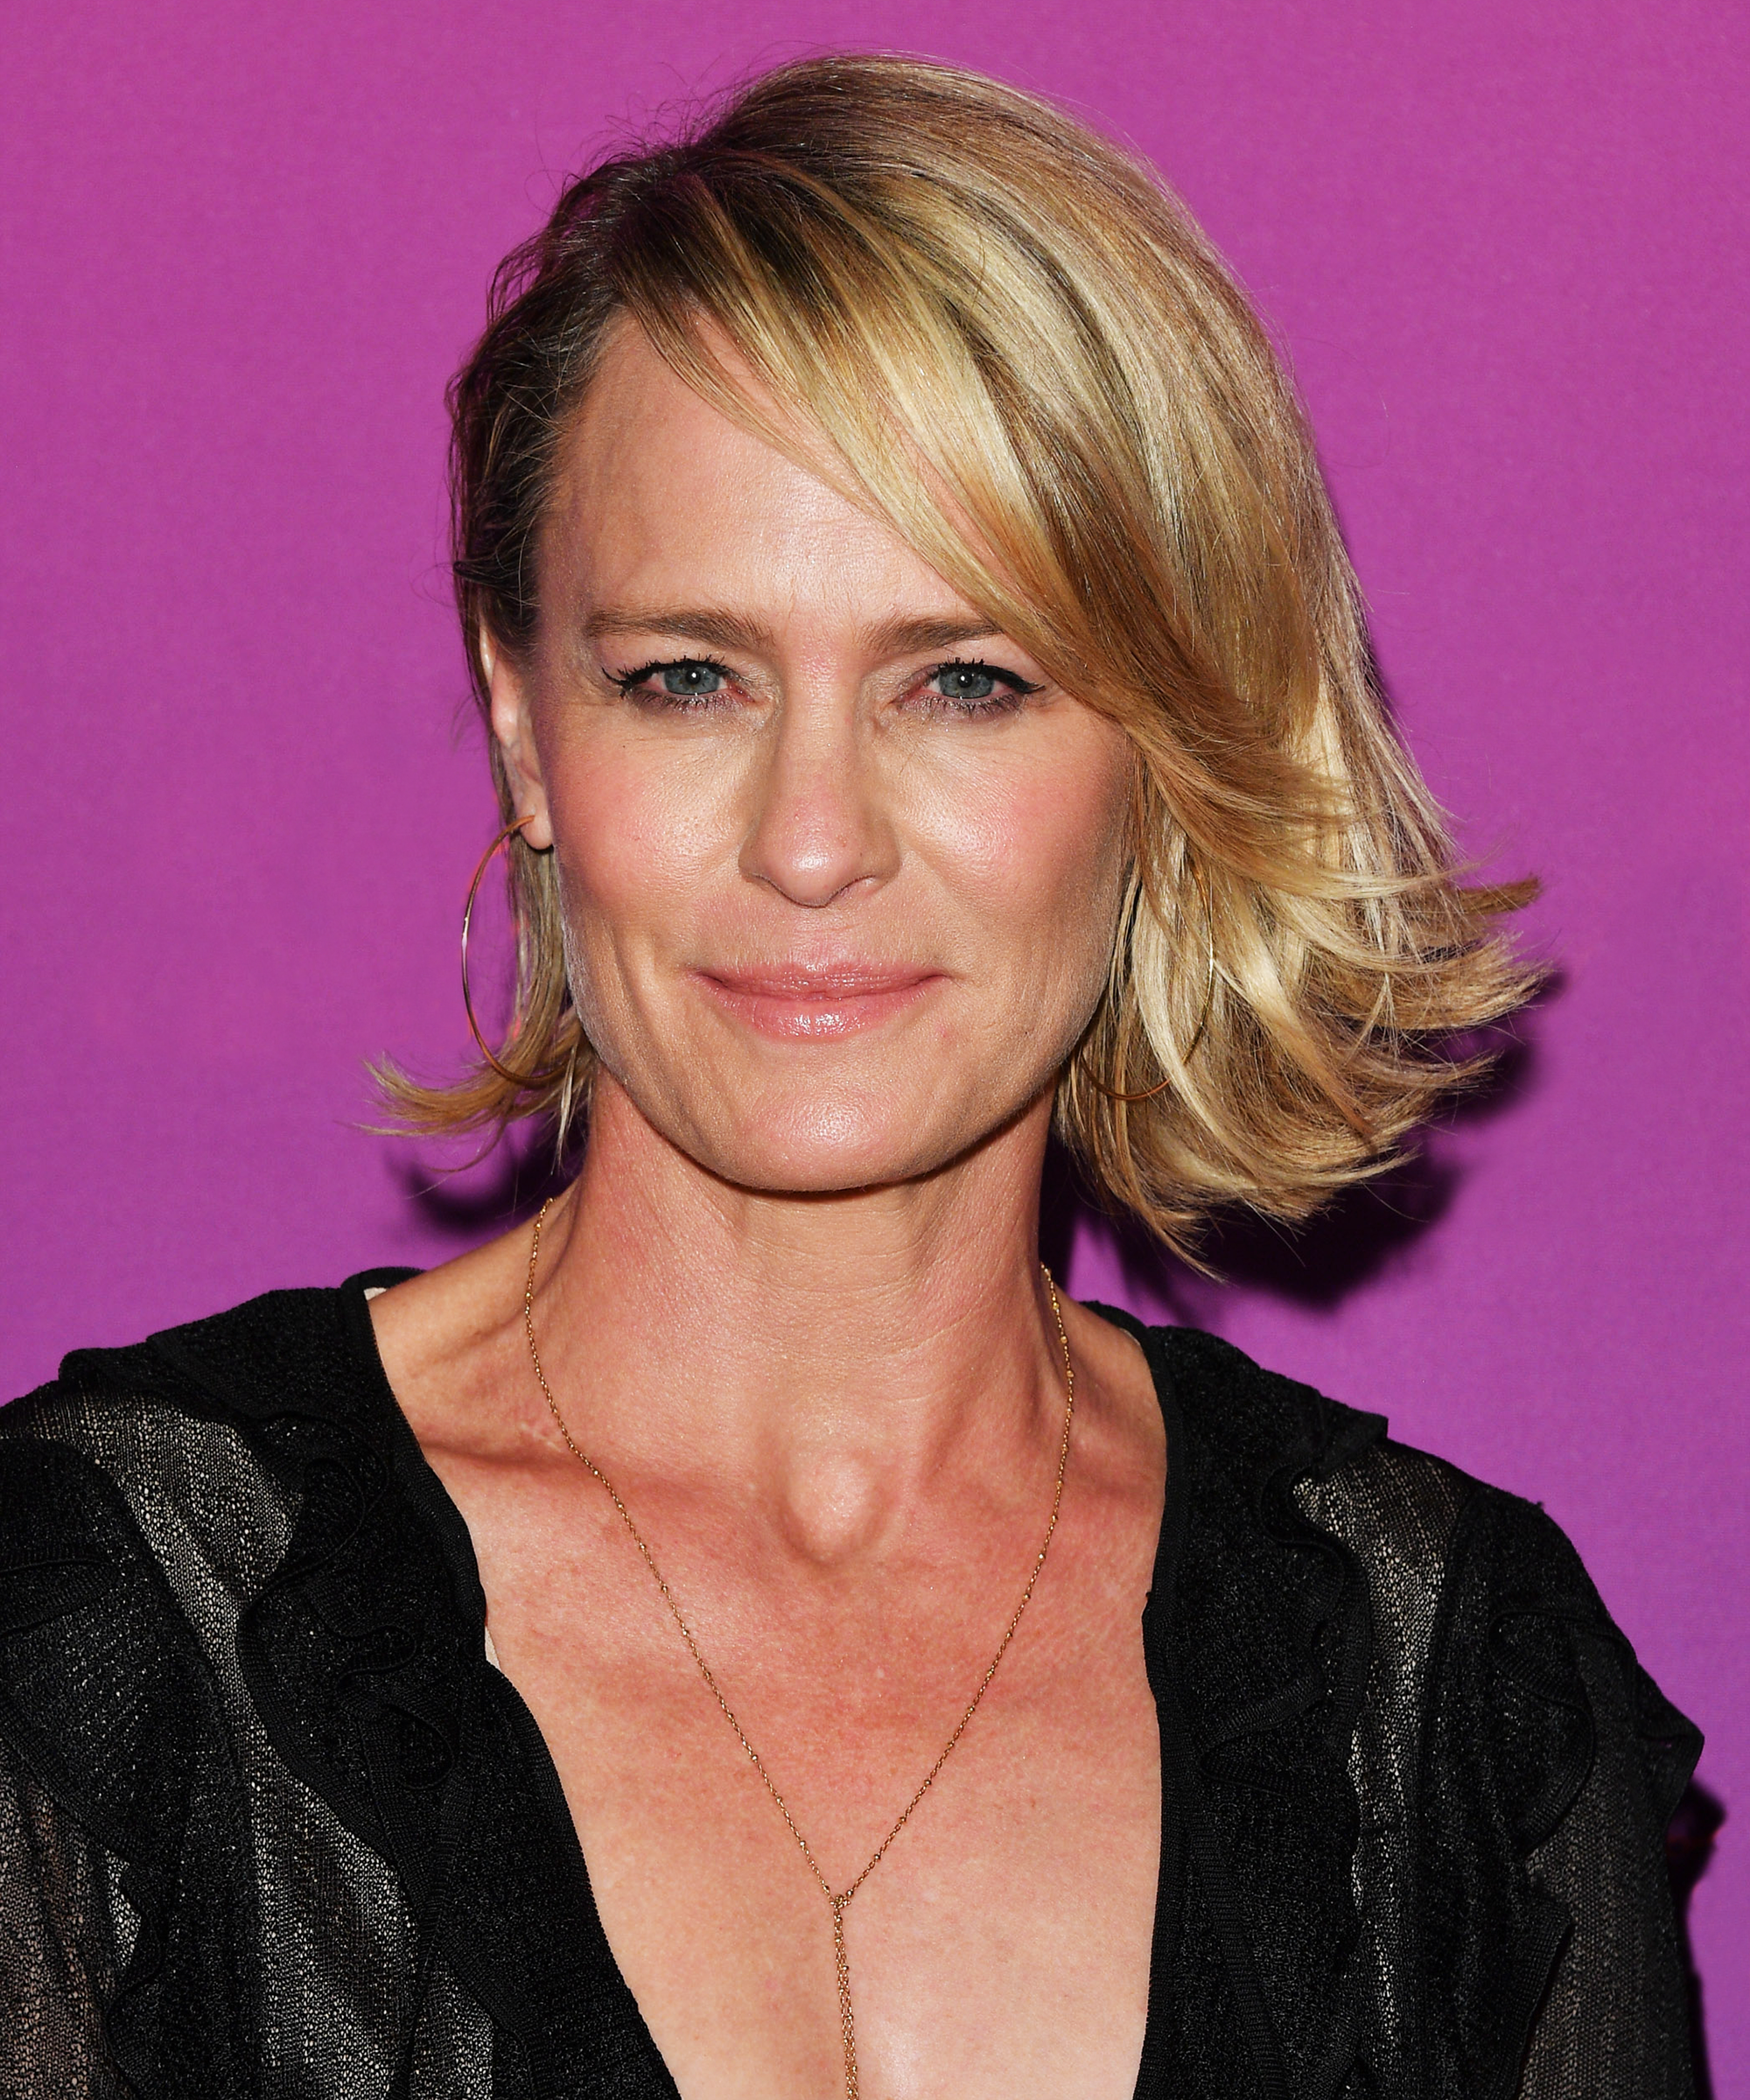 Robin Wright Demands Equal Pay For Hoc Role